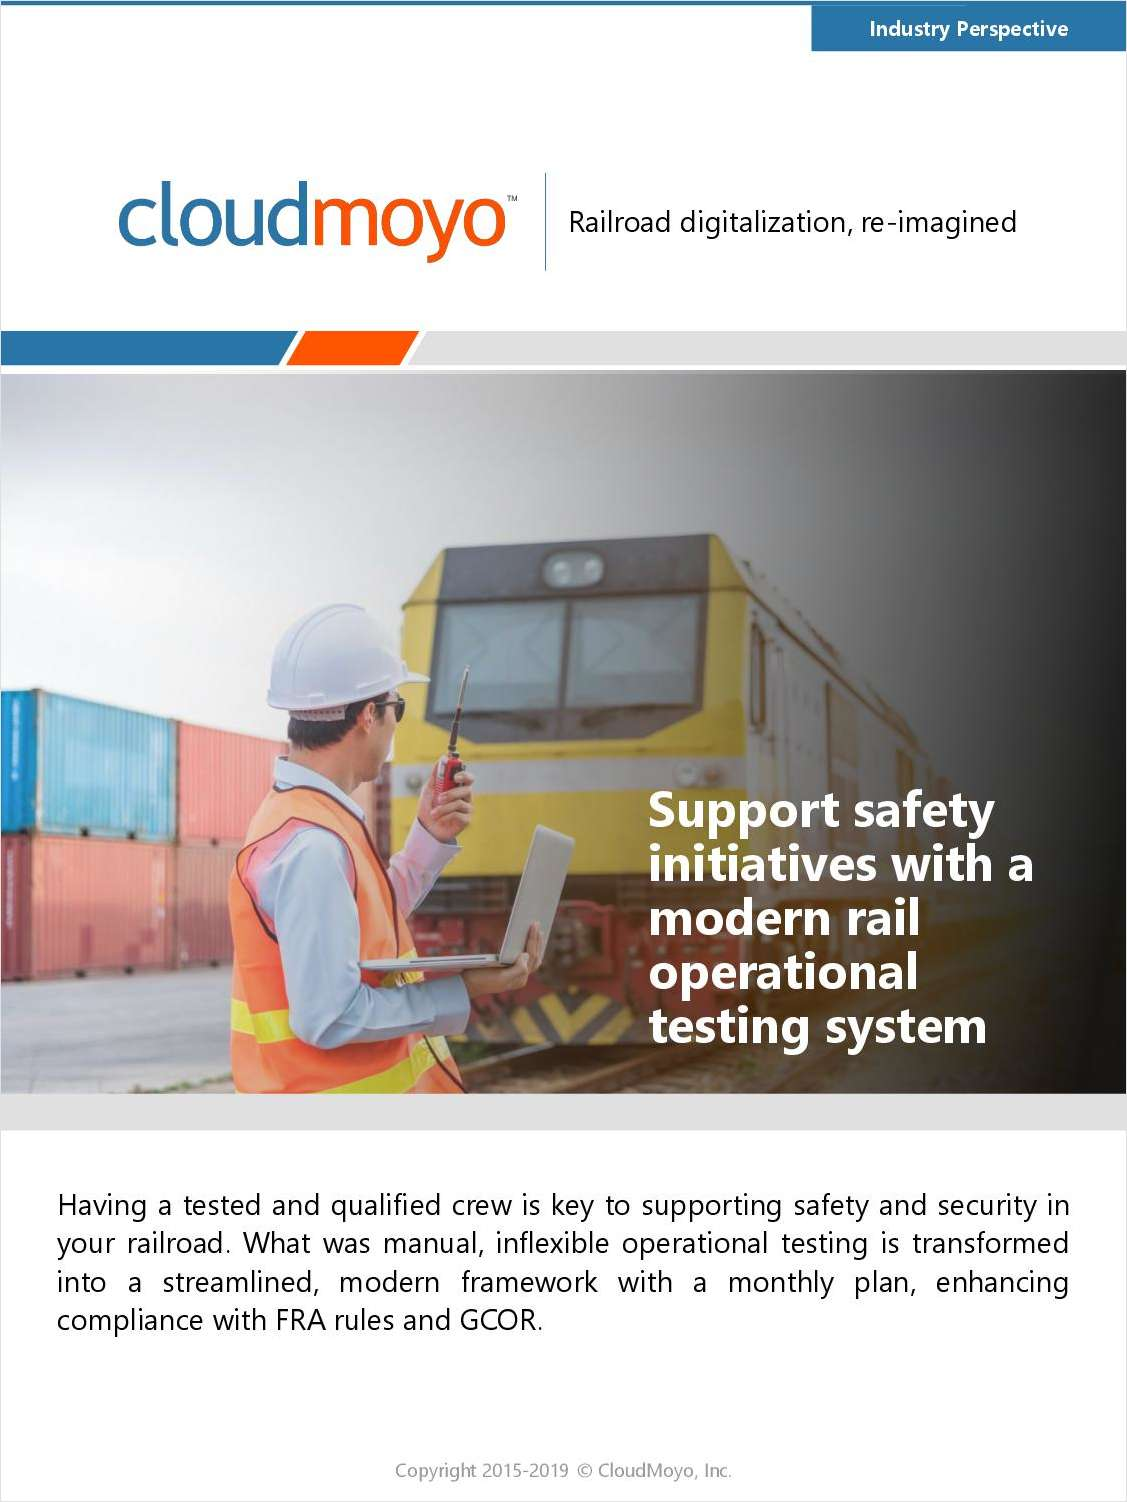 Support Safety Initiatives with a Modern Operational Testing System